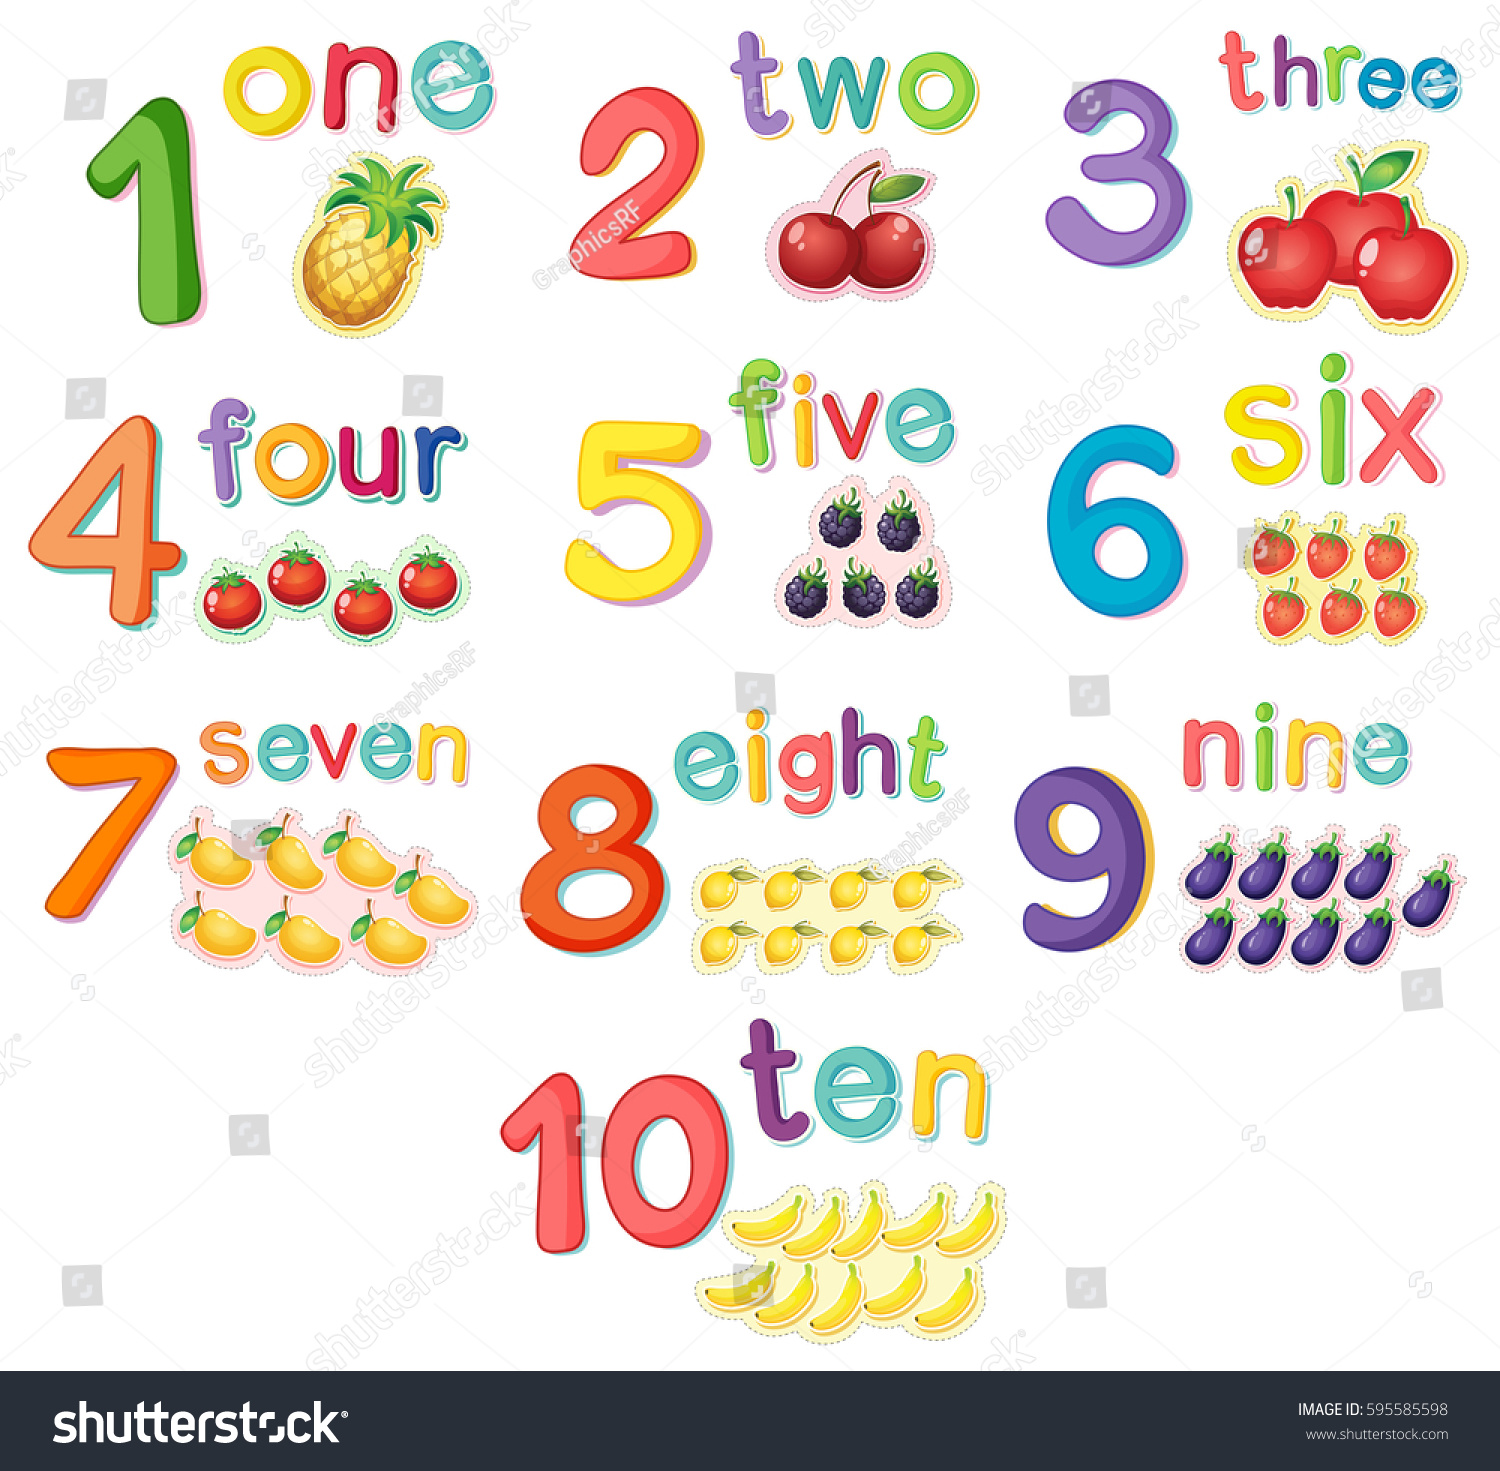 Counting Numbers Fruits Illustration Stock Vector